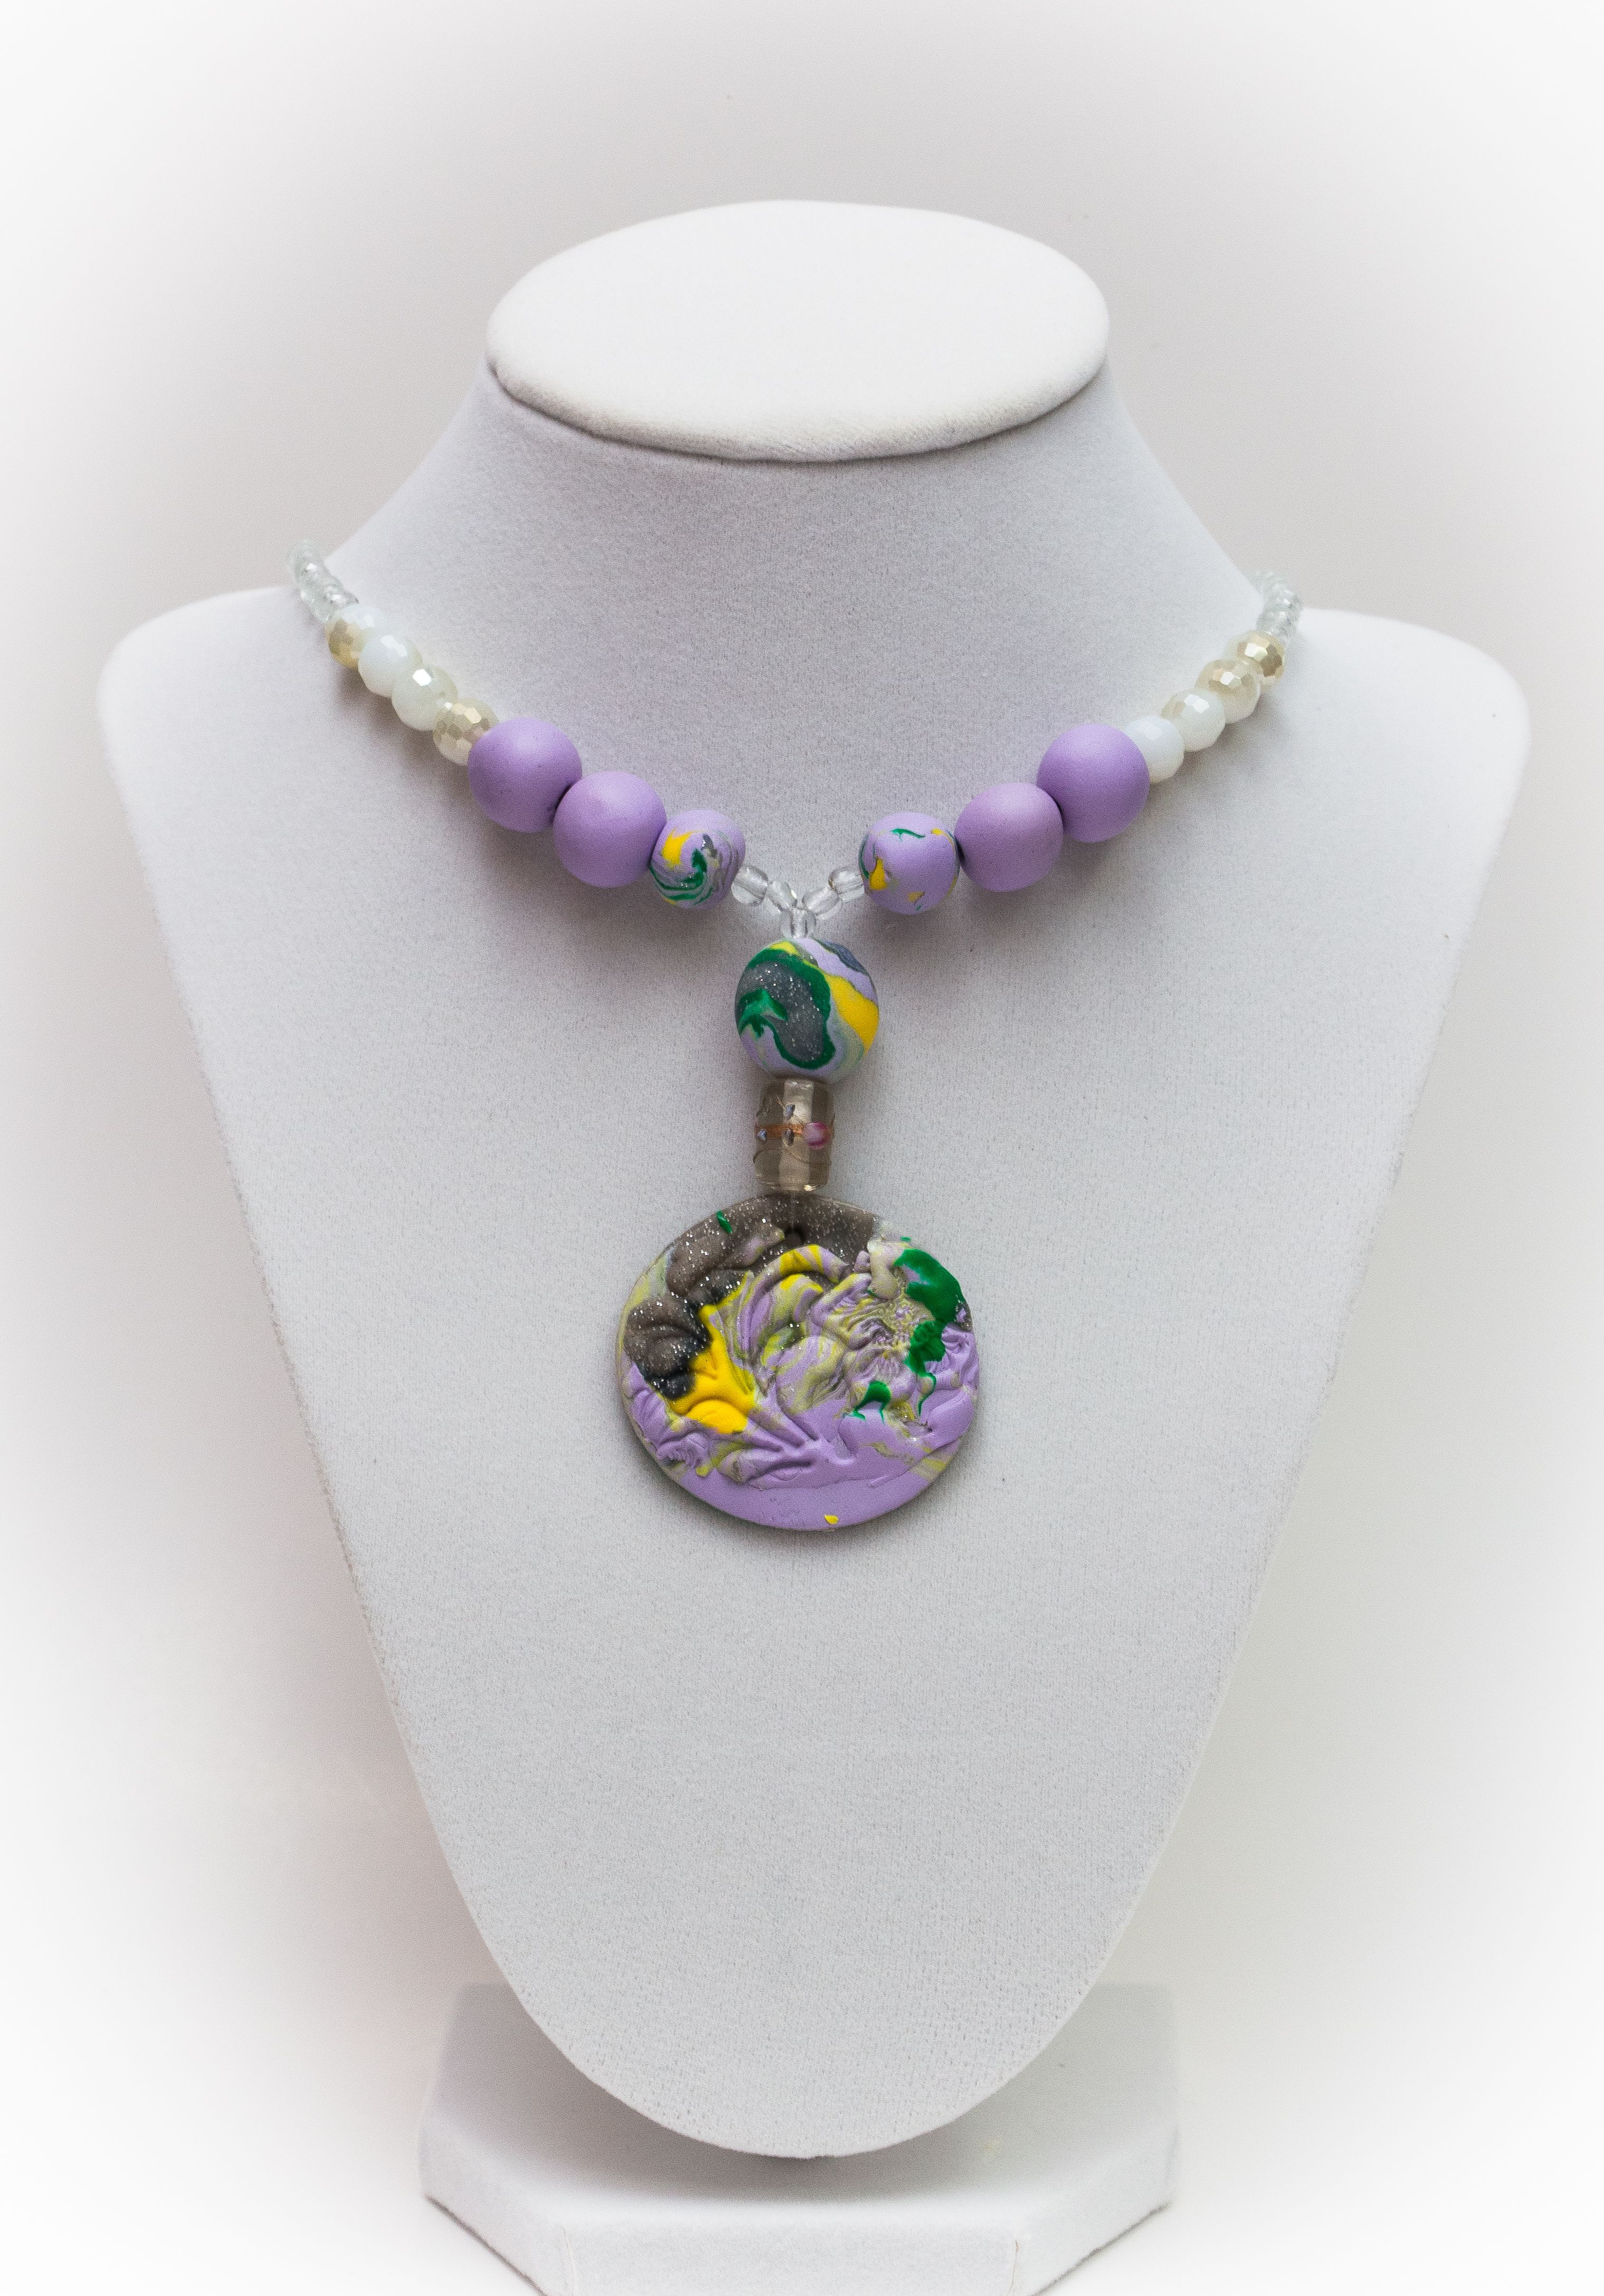 Jewelry making necklace : Clay necklace jewelry making necklaces